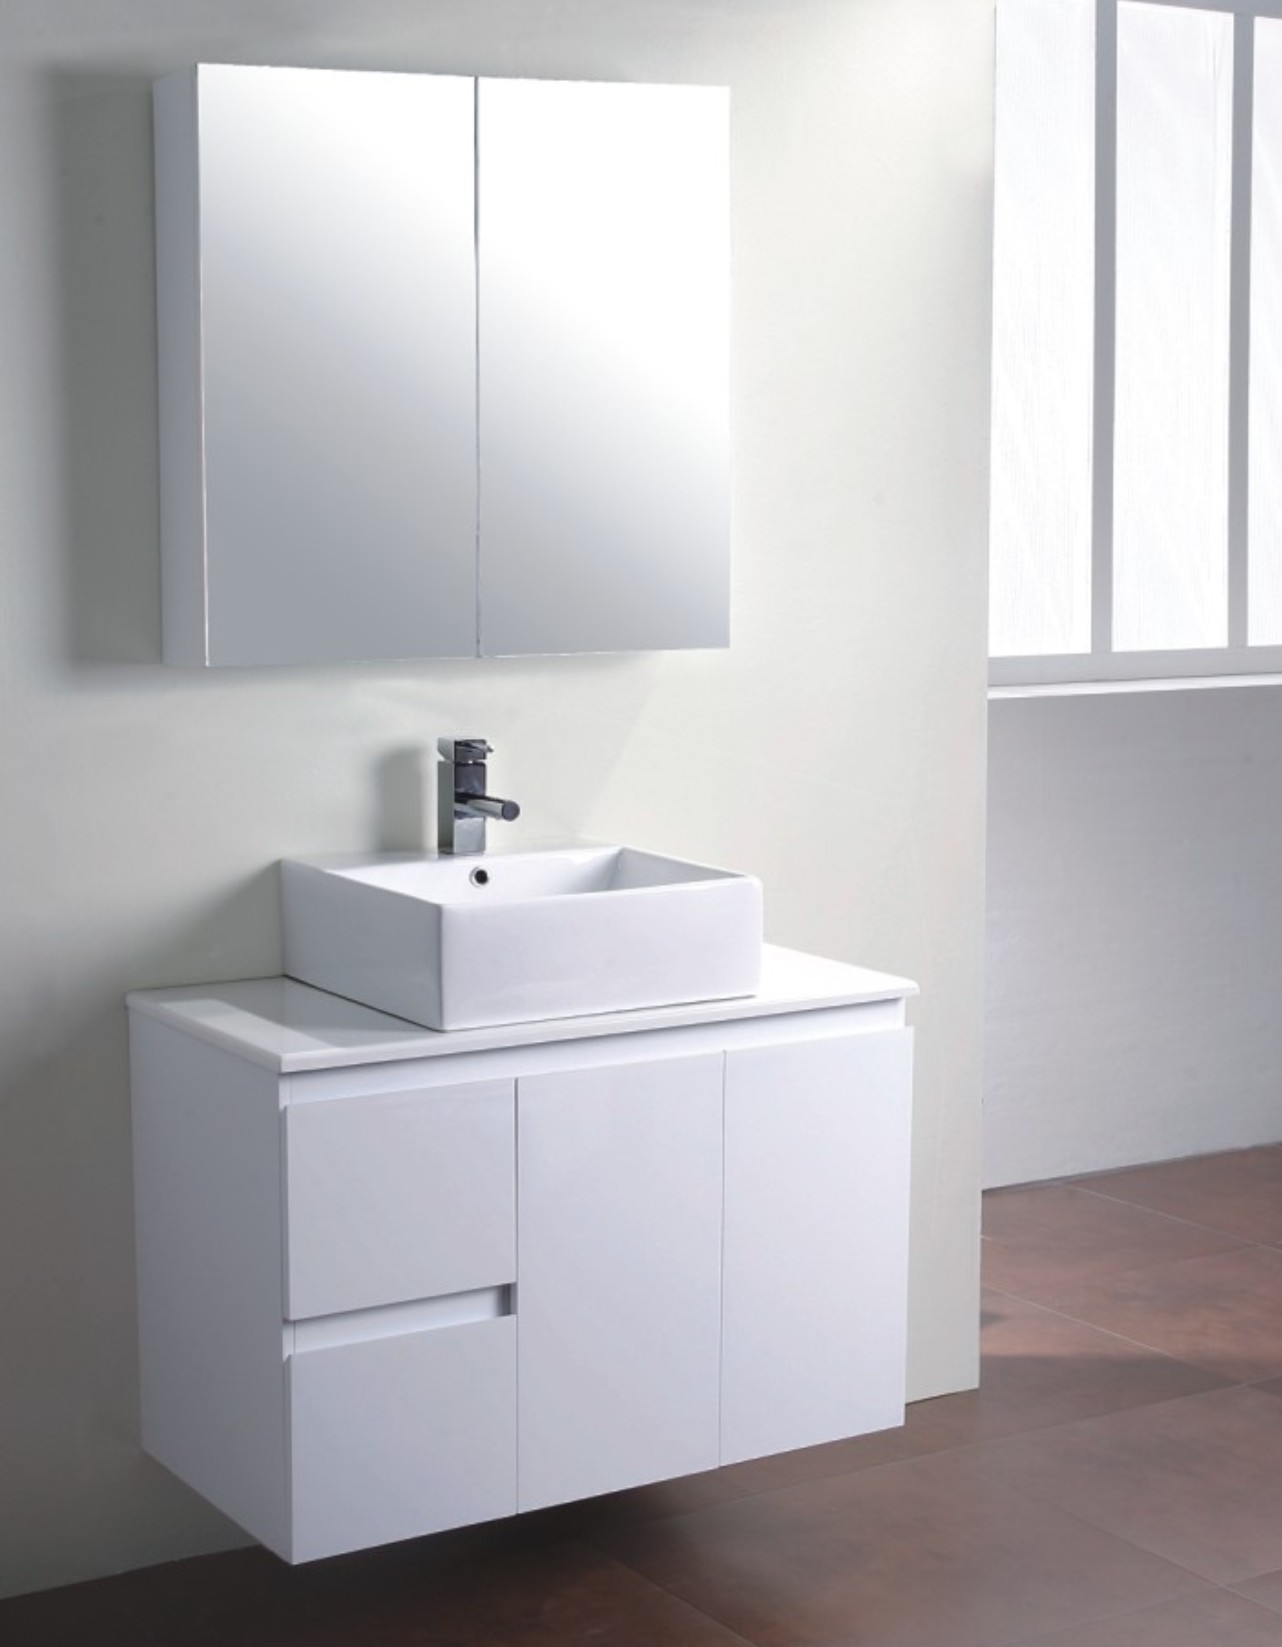 Bathroom sink cabinets white - Sink Cabinet White Shelf